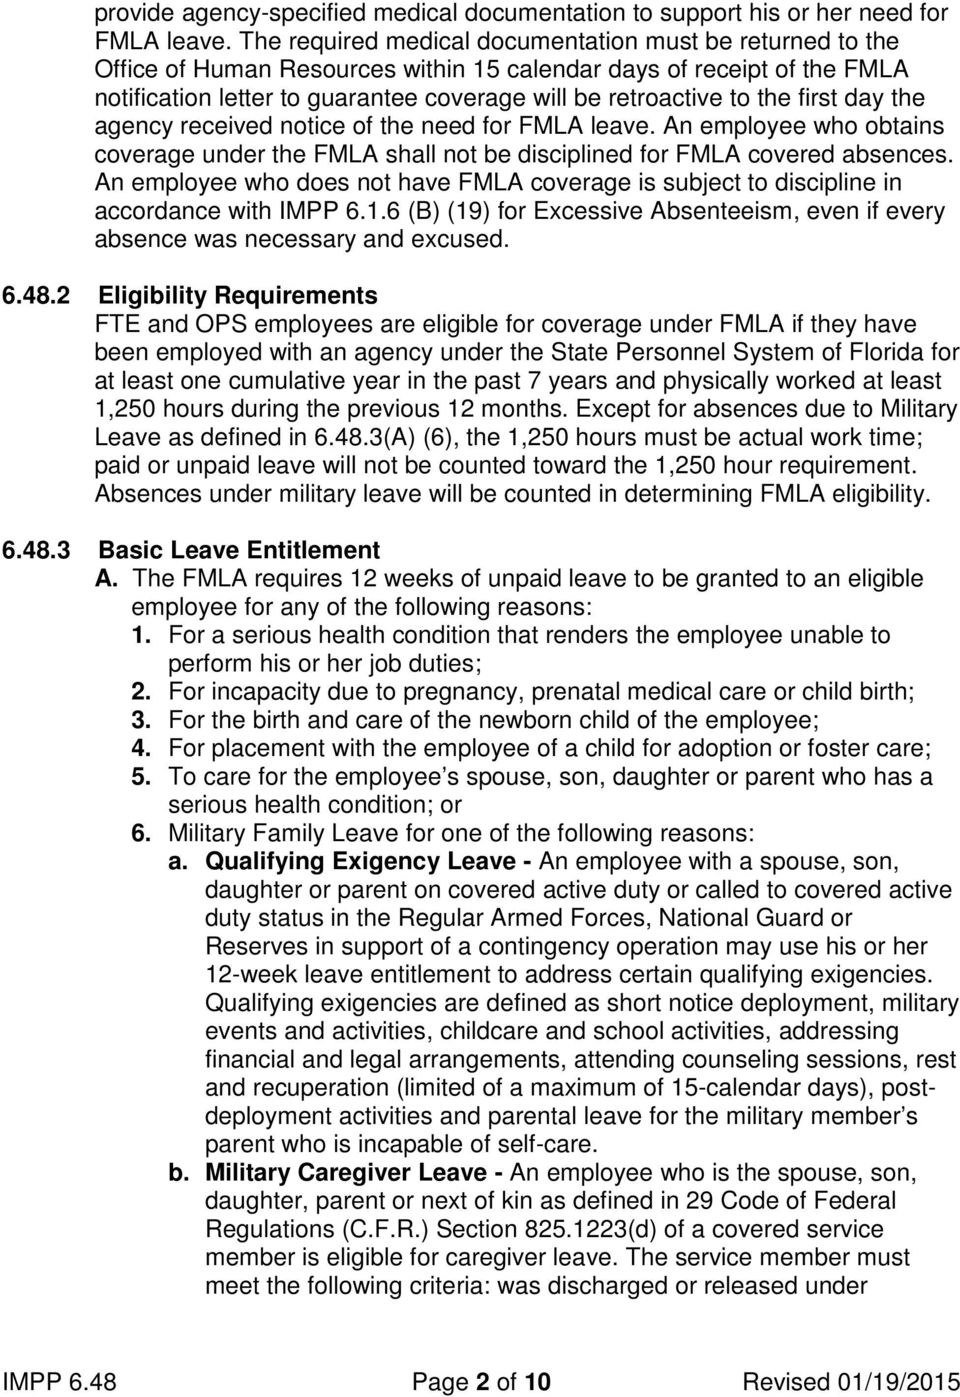 the first day the agency received notice of the need for FMLA leave. An employee who obtains coverage under the FMLA shall not be disciplined for FMLA covered absences.